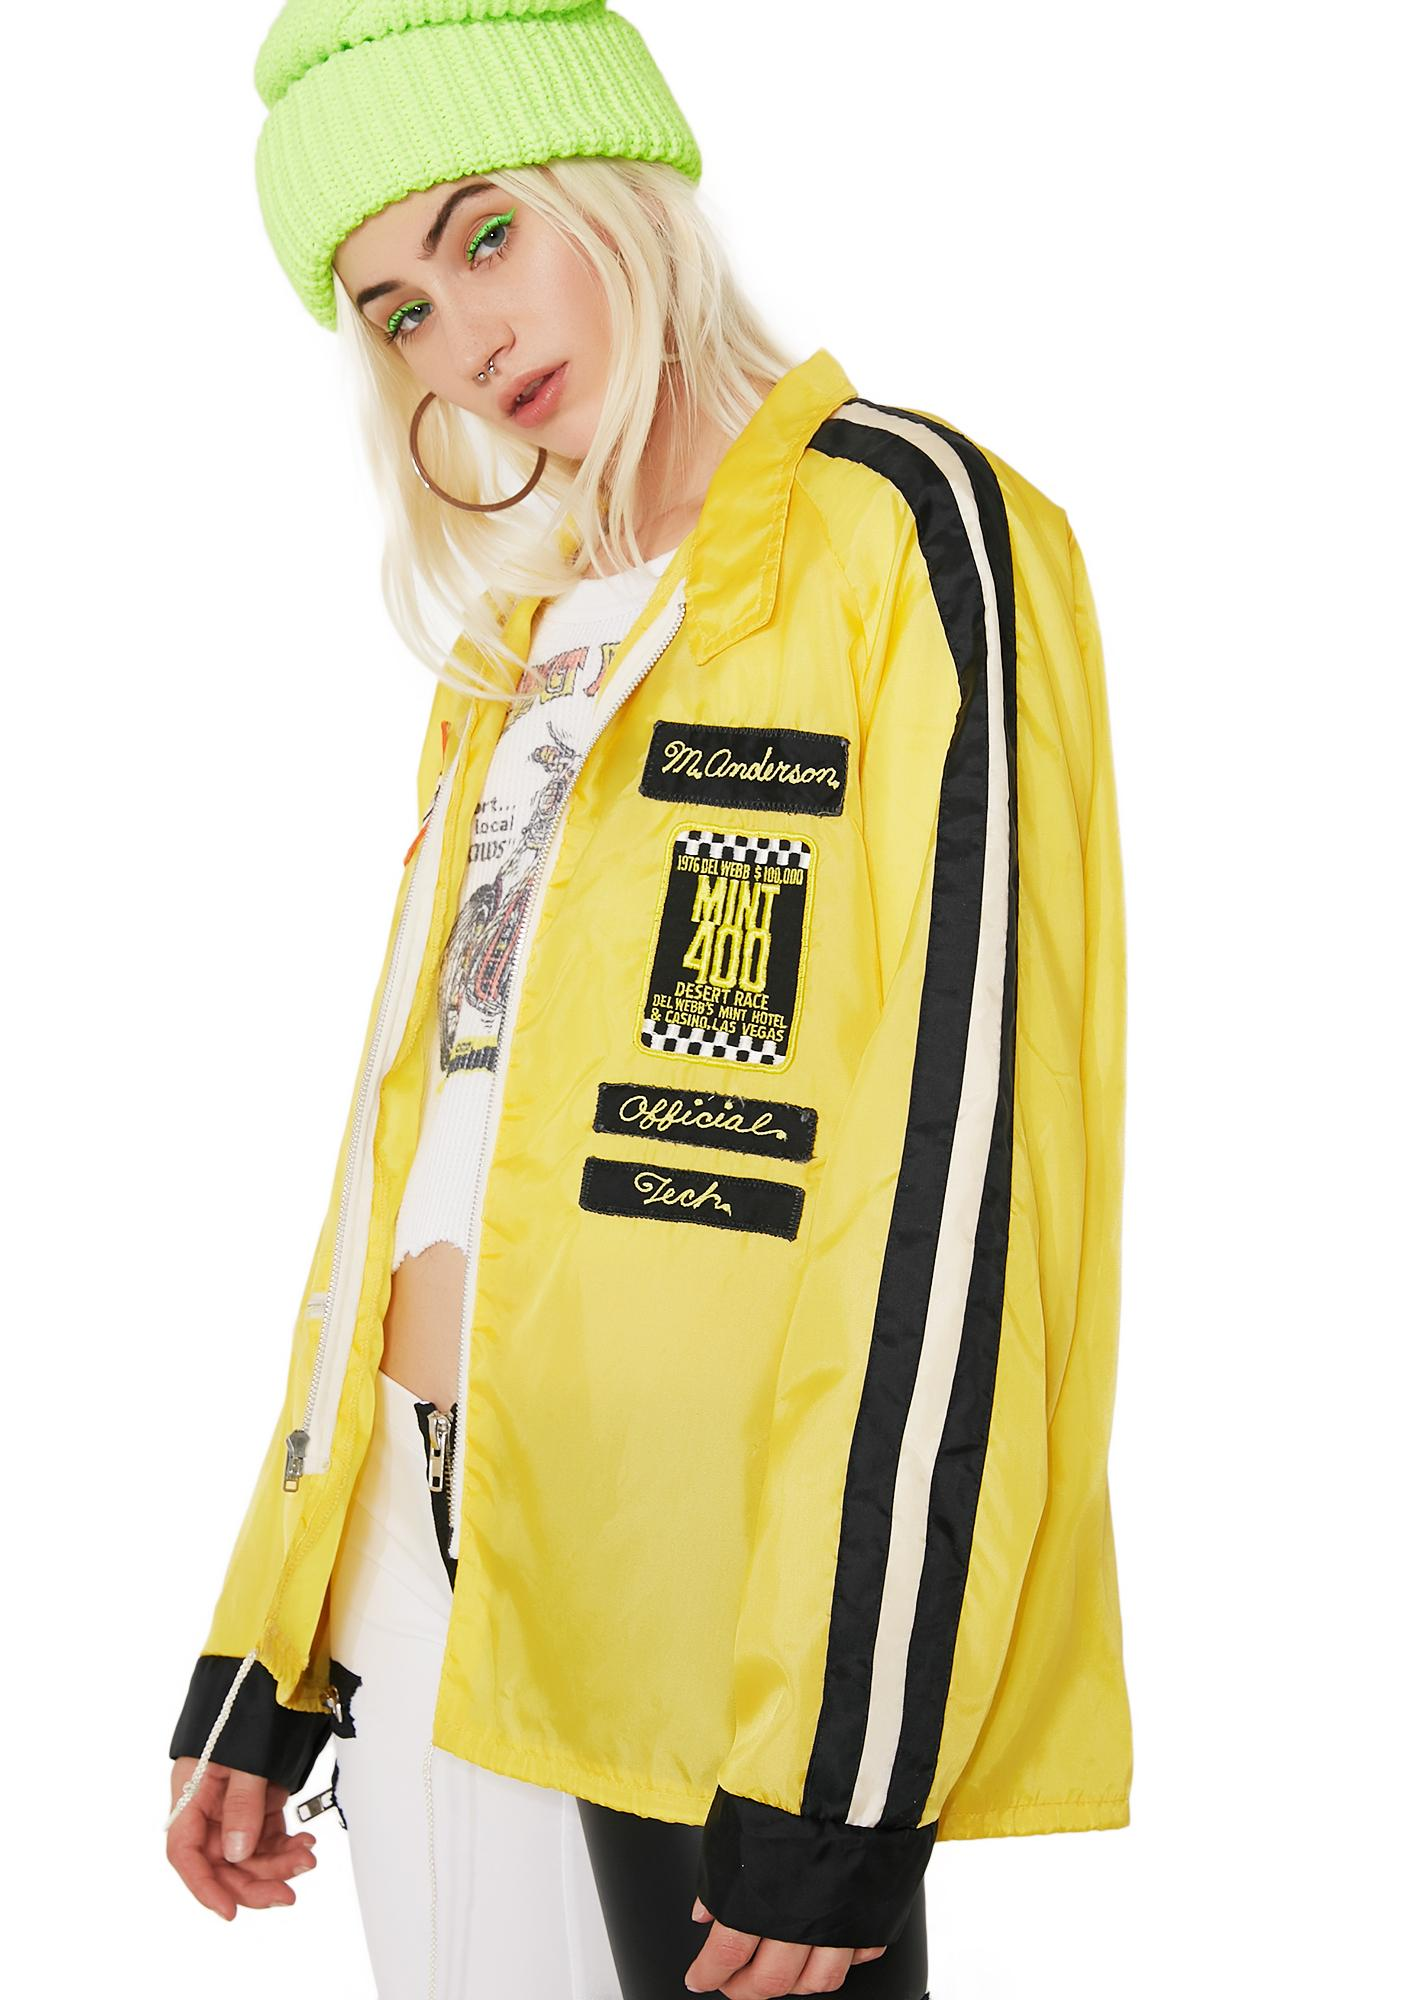 Vintage Yellow Racing Jacket